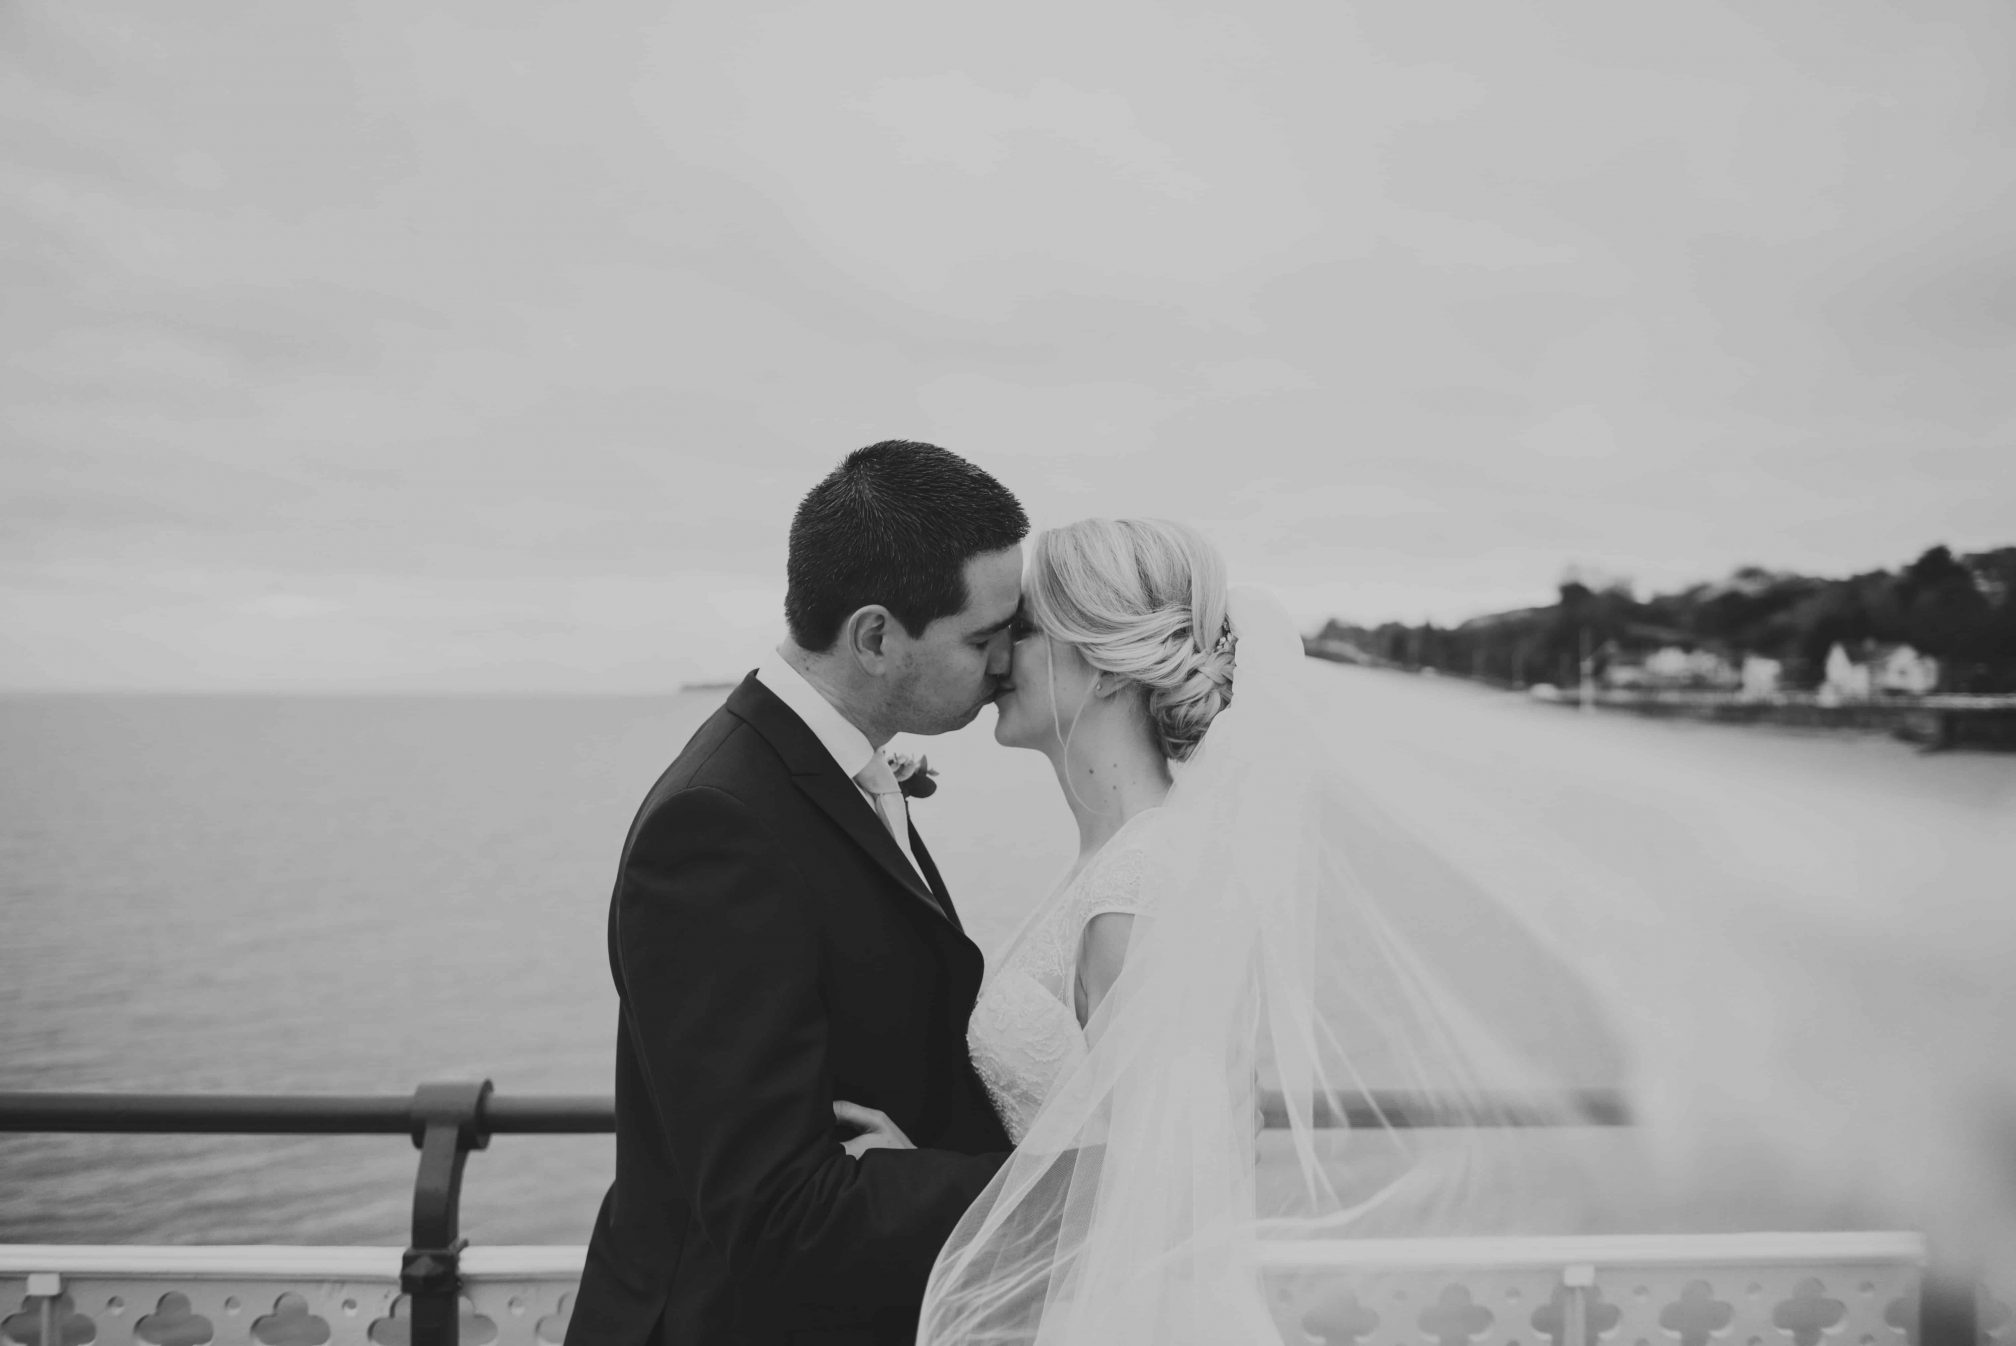 Best Wedding Photographer South Wales Bride and Groom stood on pier kissing